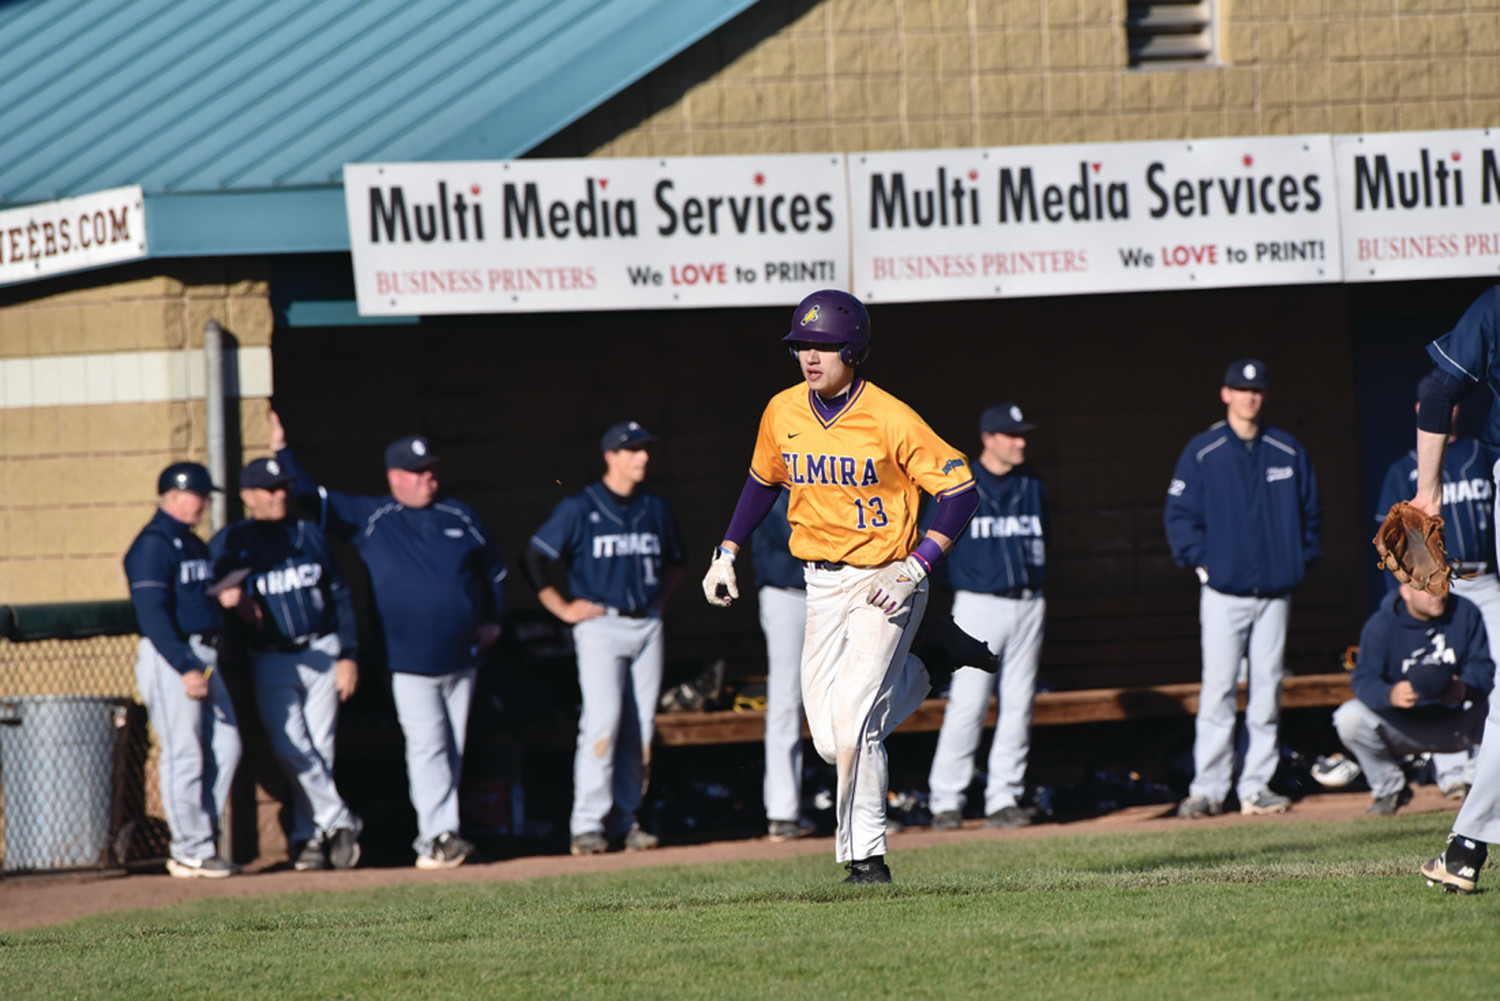 NICE NUMBER: While most people think the number 13 is unlucky, it hasn't been that way for Harrison Zambarano, captain of the Elmira College baseball team that recently began the 2018 season. (Photos courtesy of EC Sports Information)